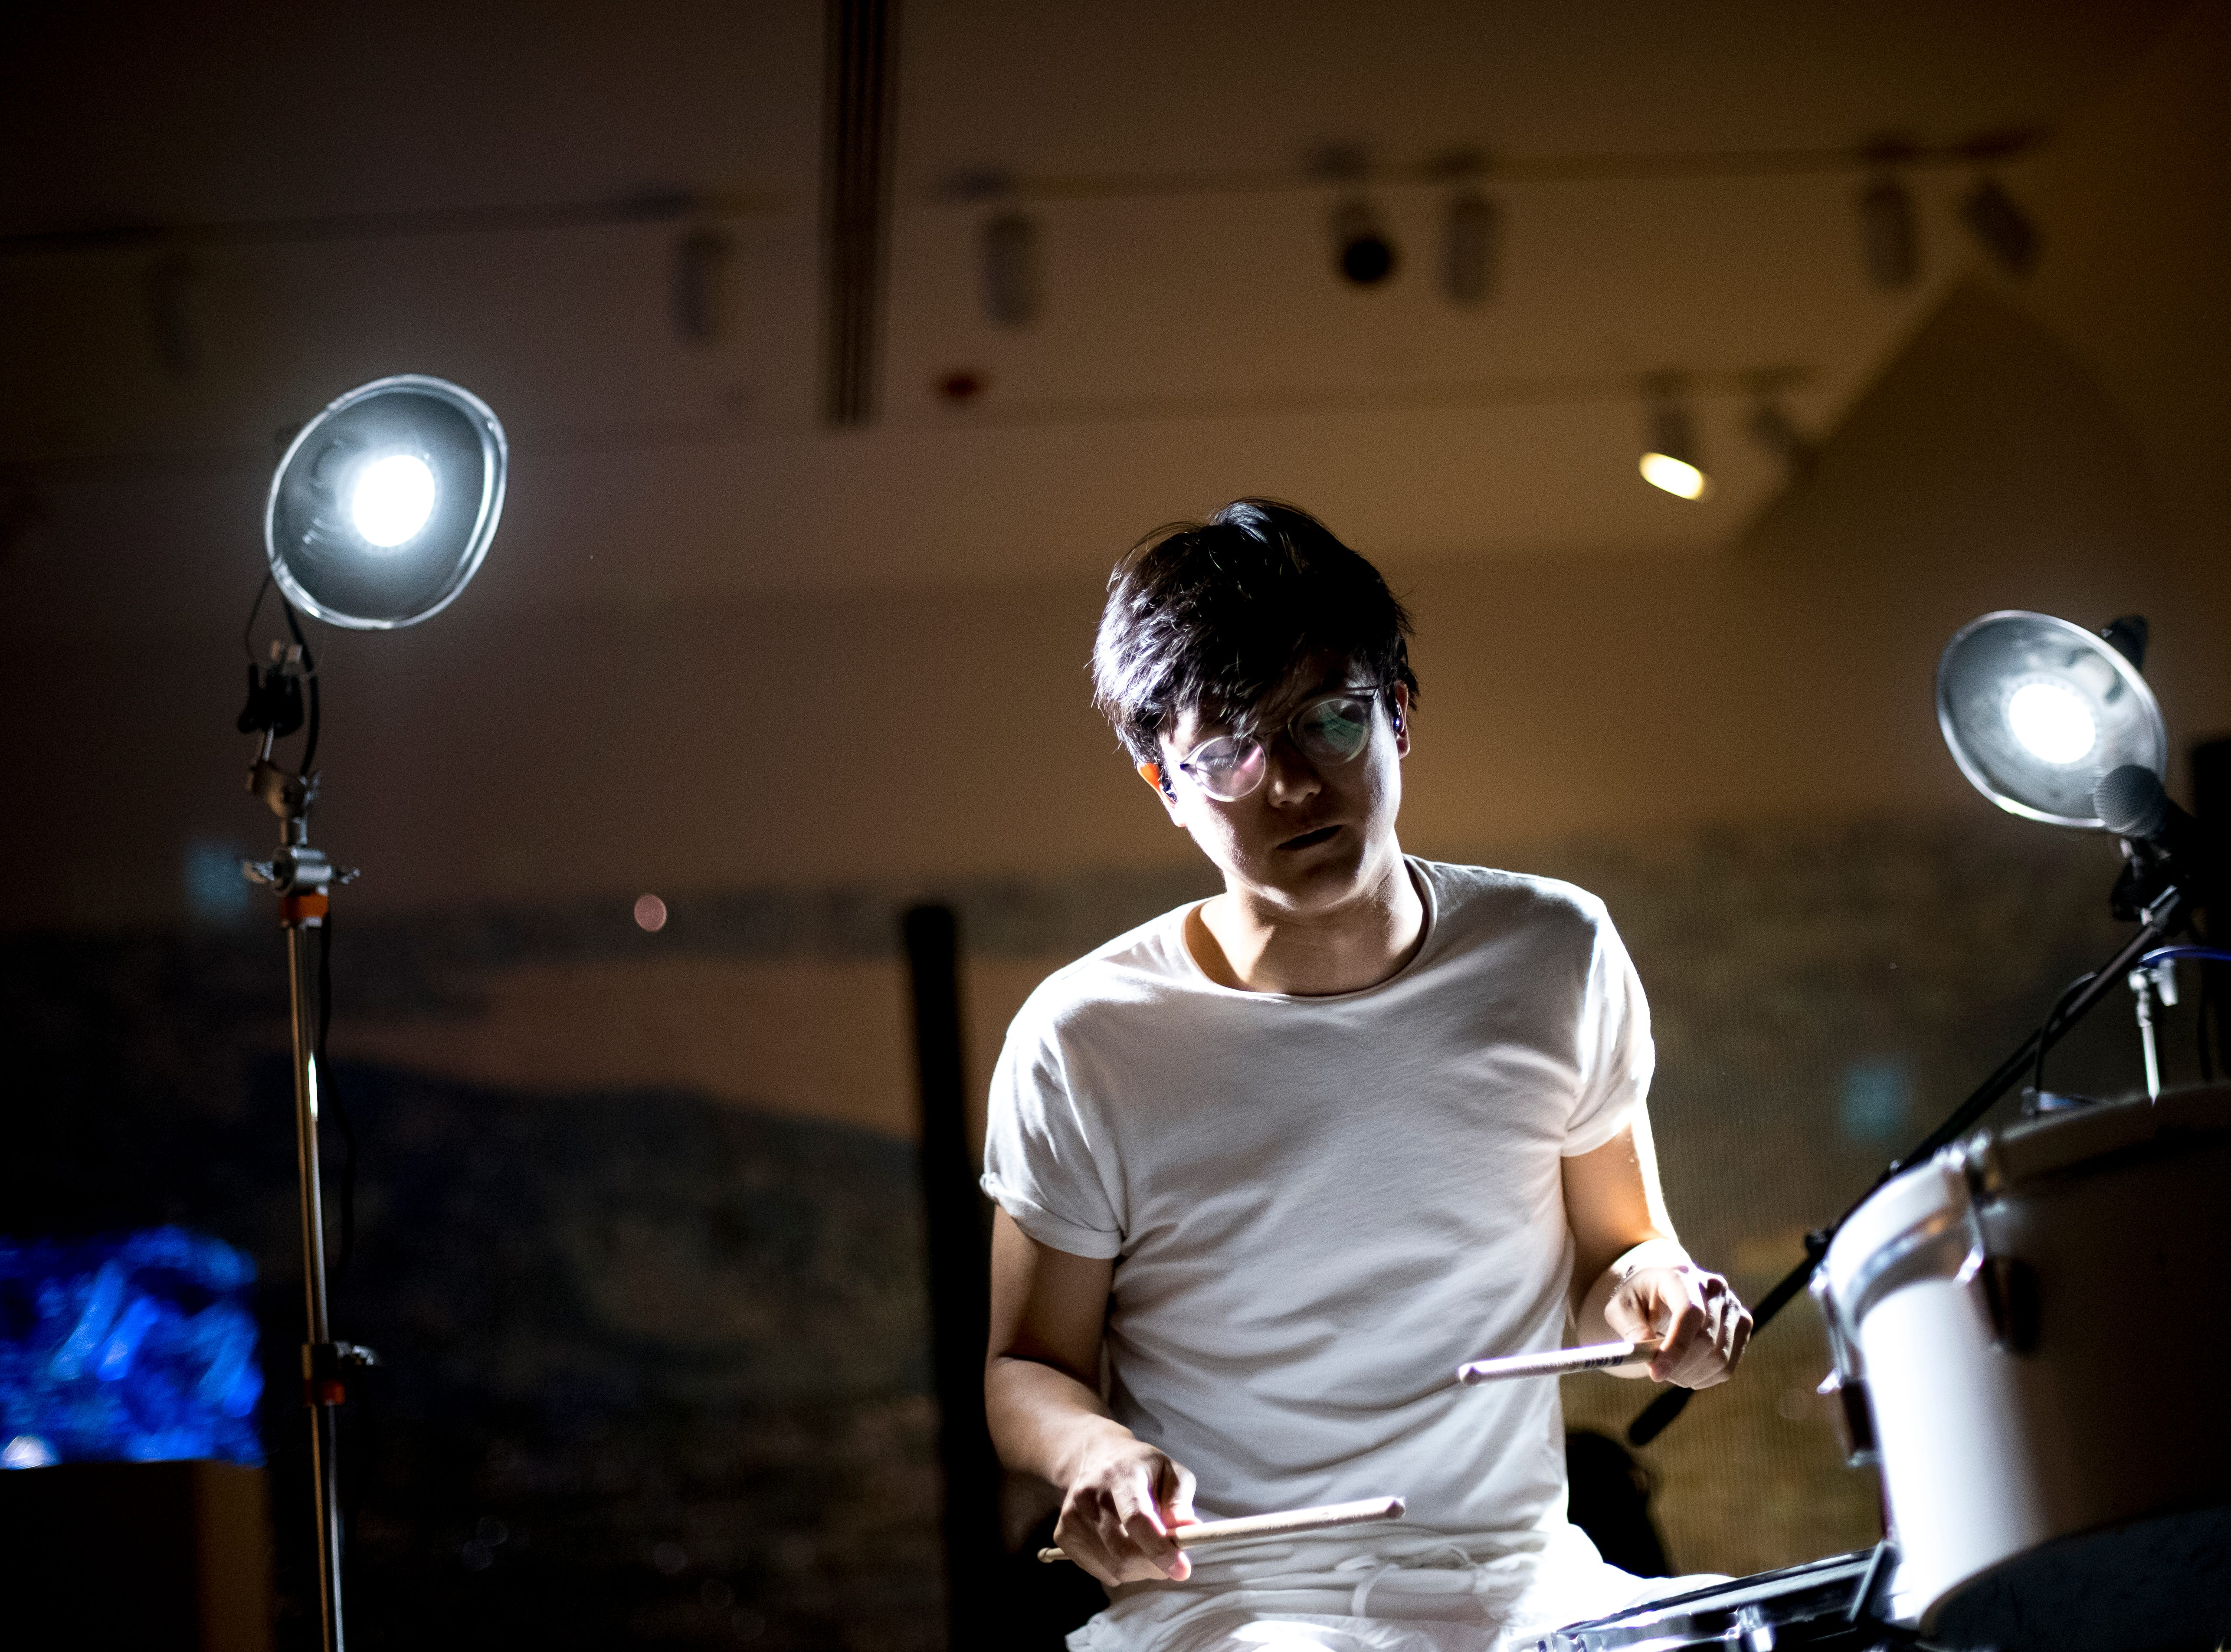 Ian Chang performs at the Knoxville Museum of Art at Big Ears Festival 2019 in Knoxville, Tennessee on Saturday, March 23, 2019.